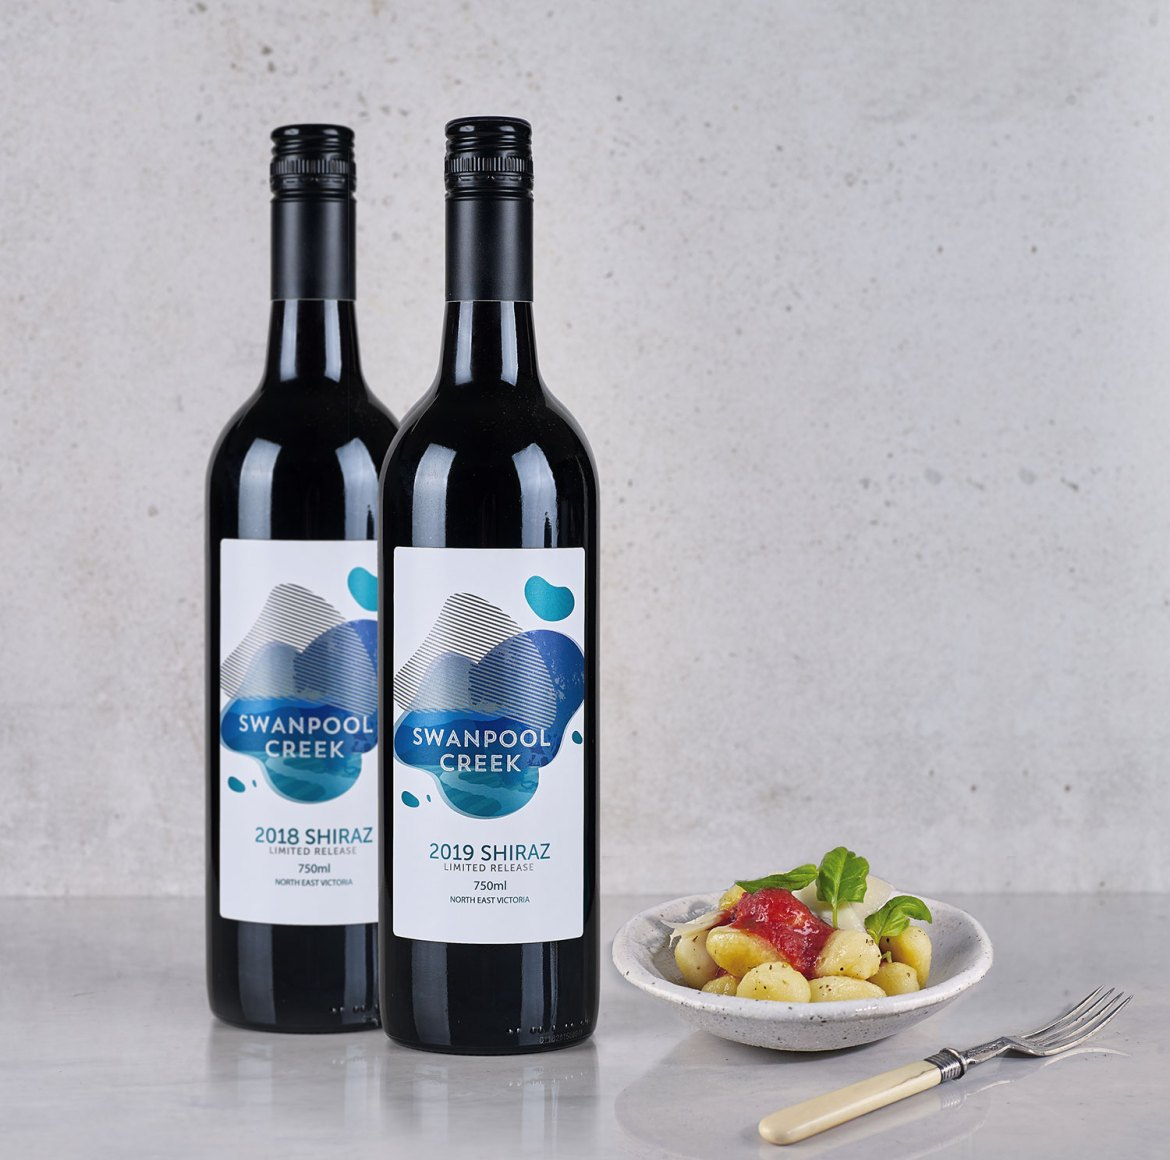 The Swanpool Creek Shiraz pair that's leading the local pack